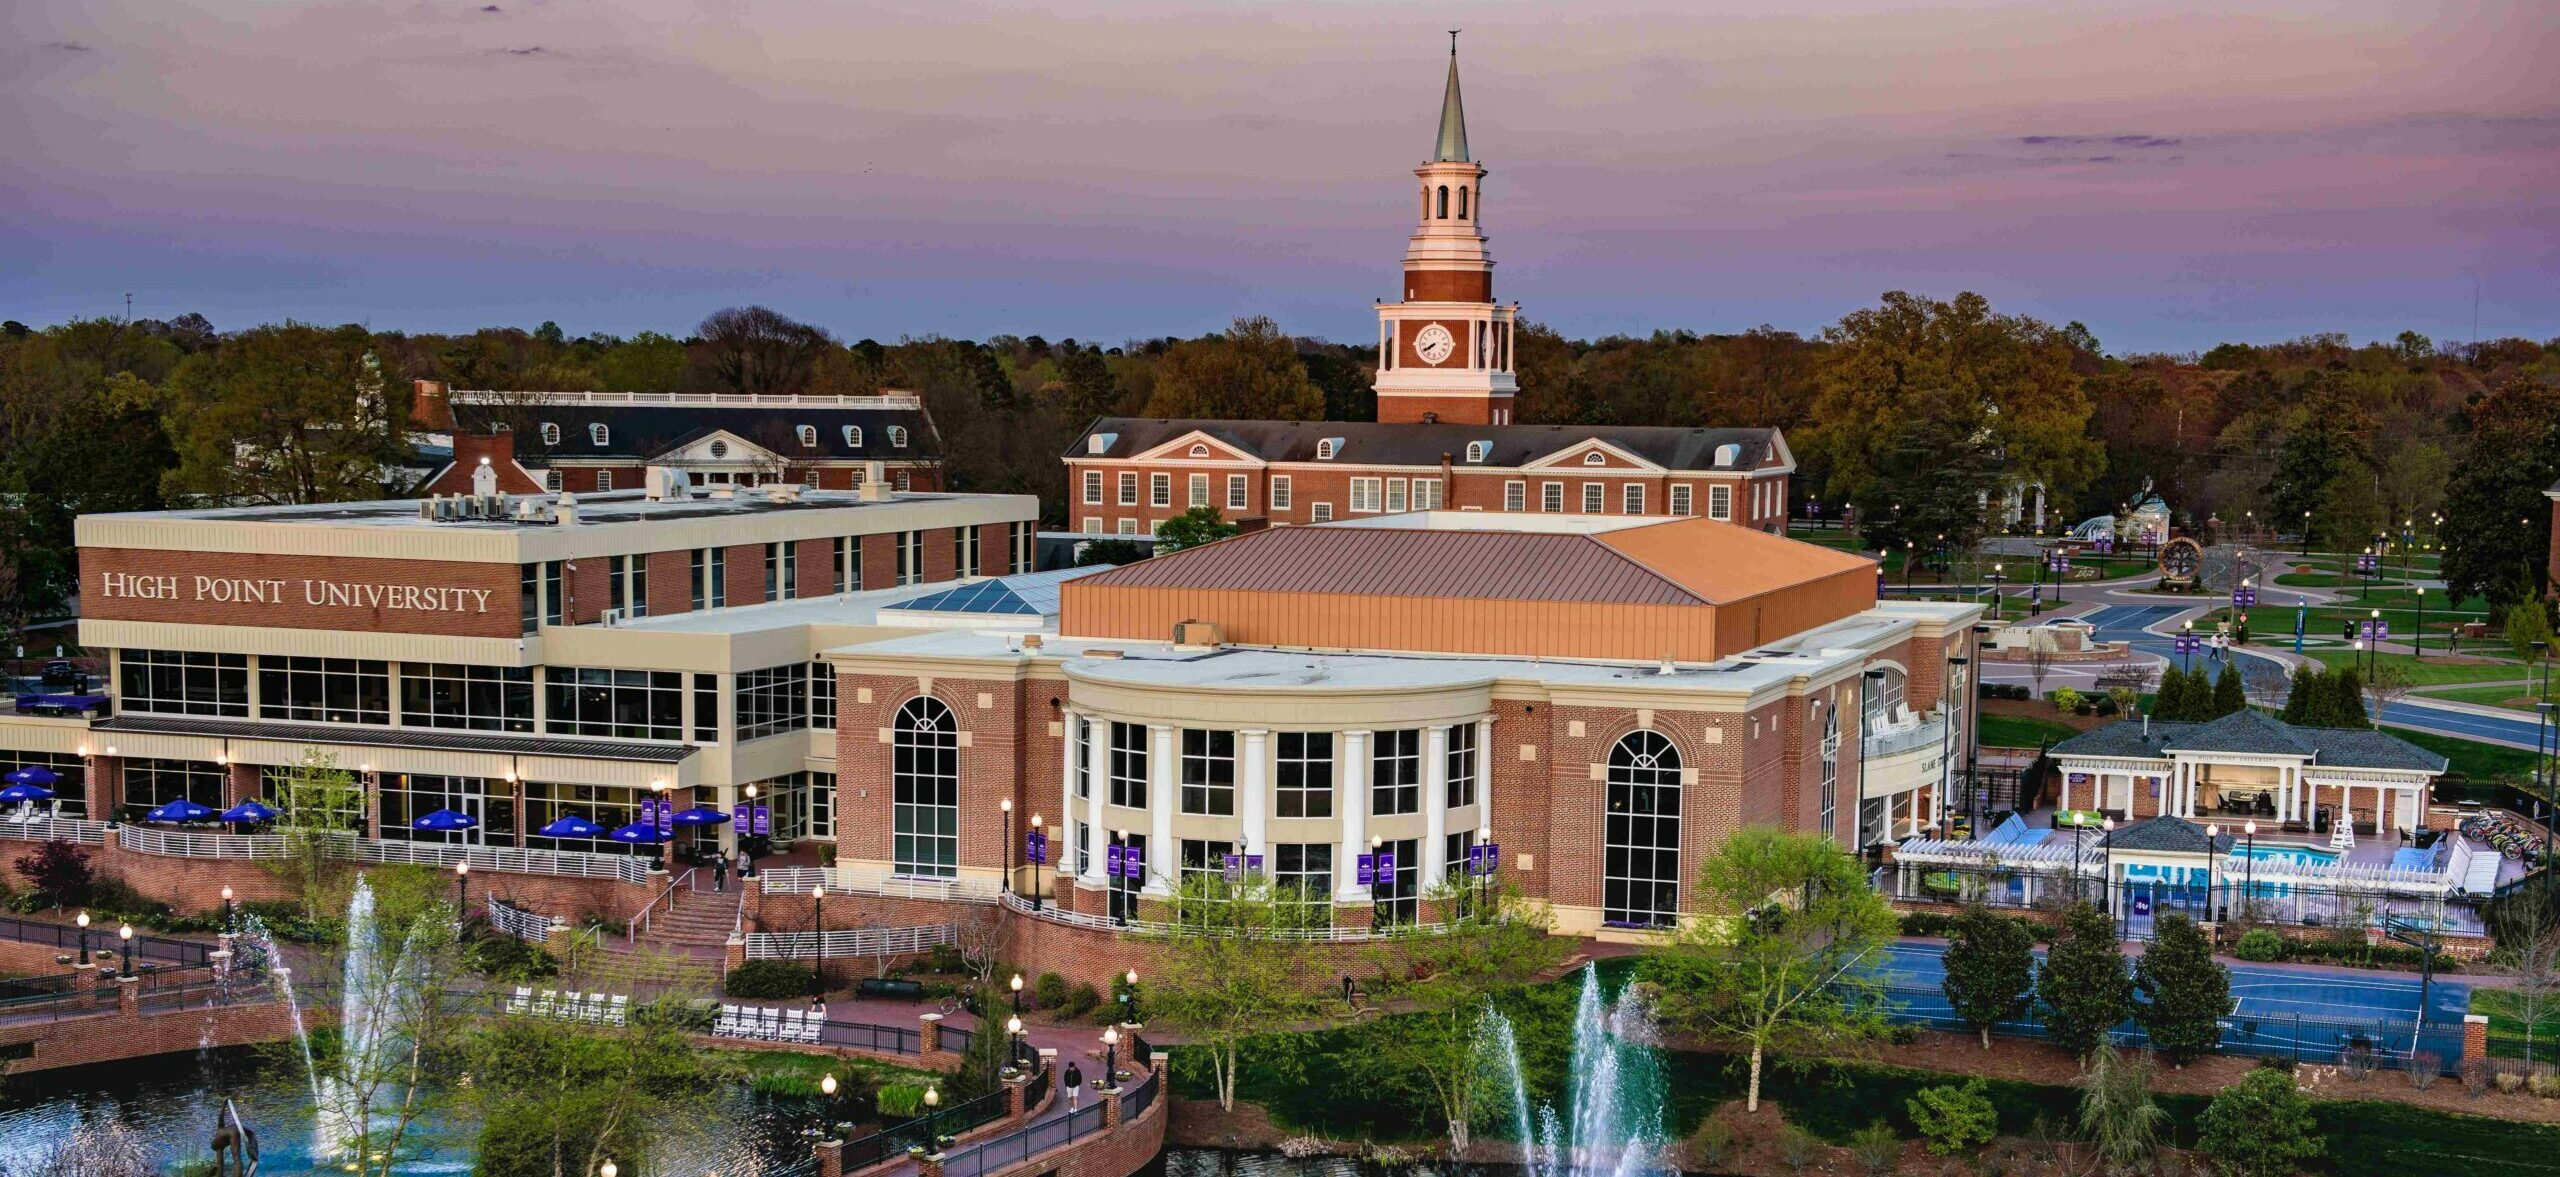 Welcome to High Point University